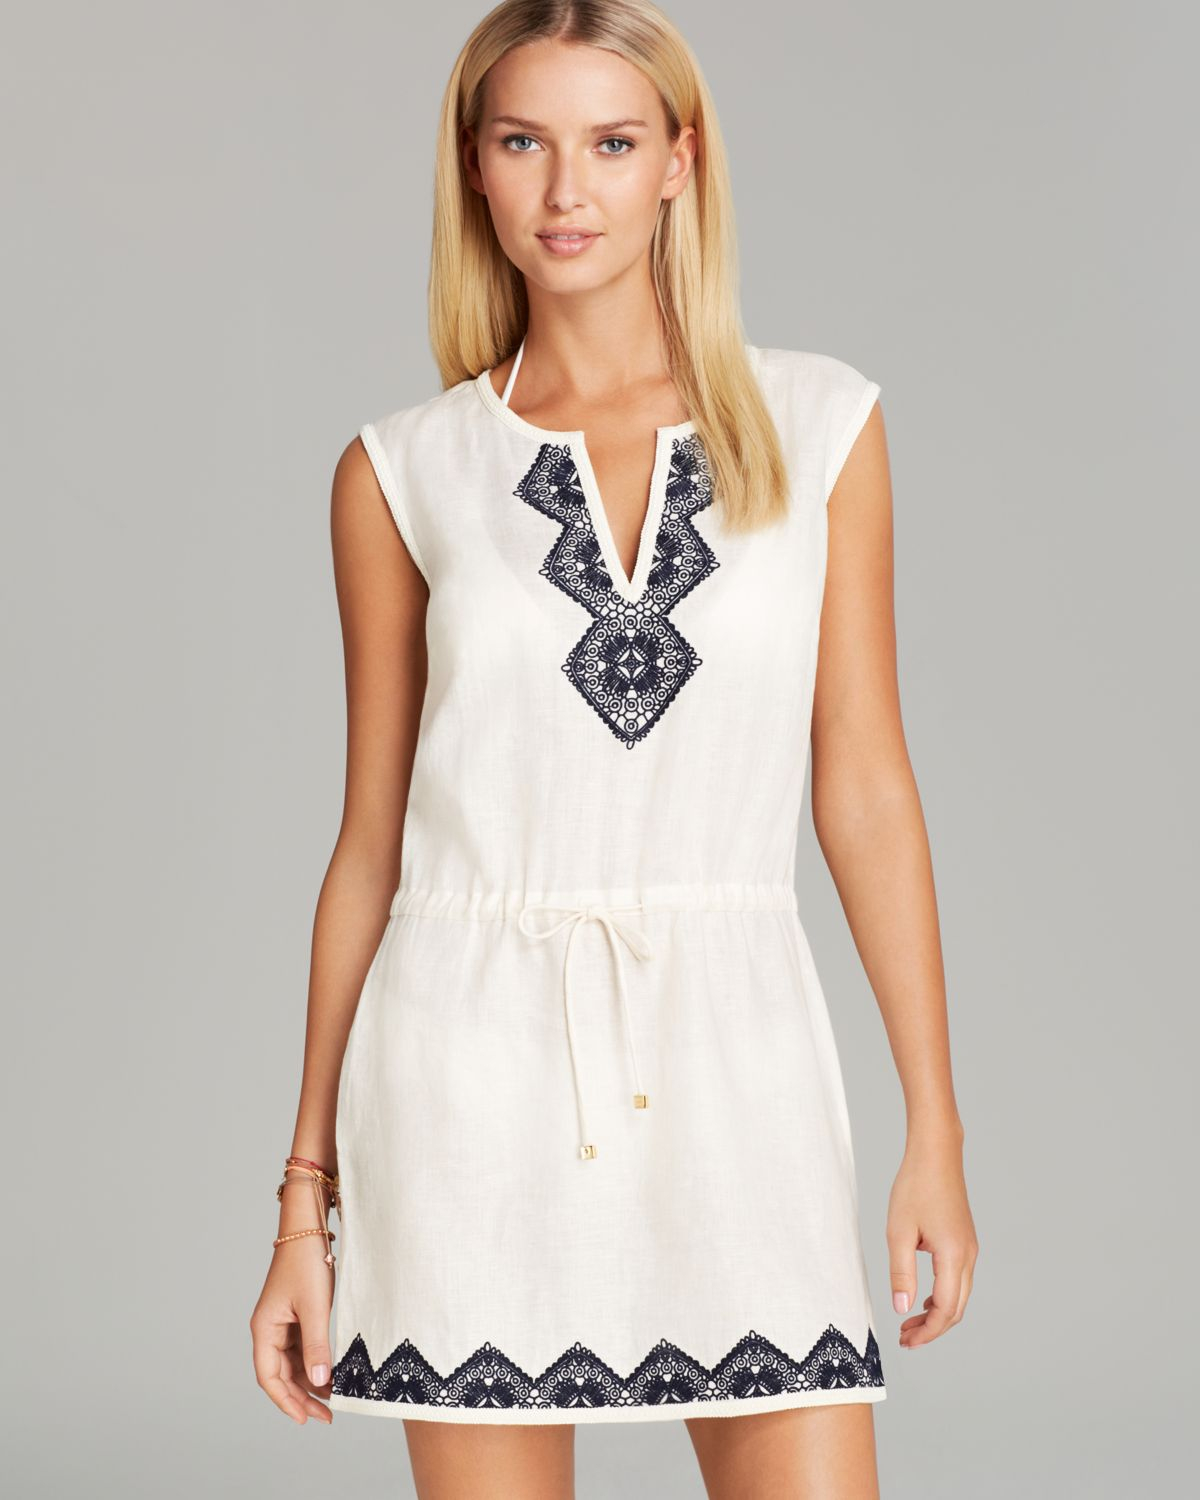 Lyst - Tory Burch Mergherita Swim Cover Up Dress in White 036df3ec6